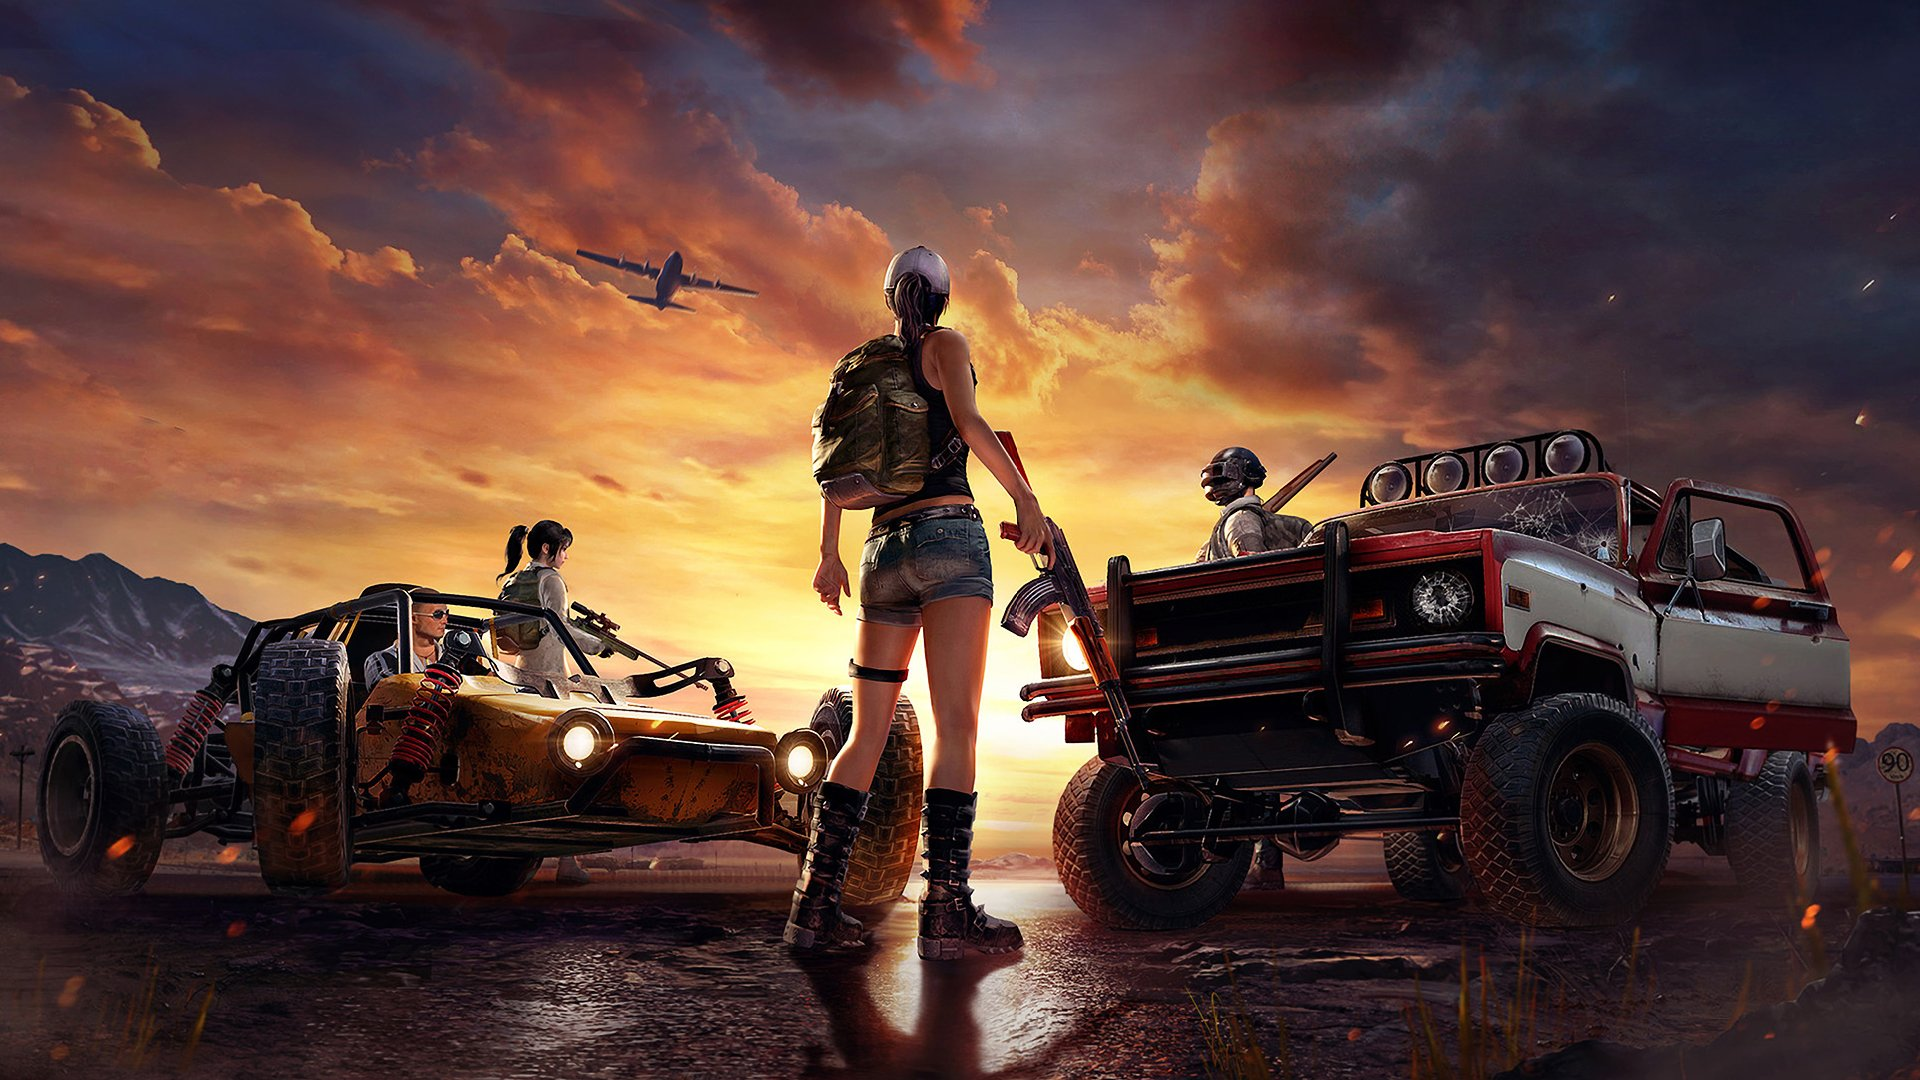 Pubg Car Wallpapers Wallpaper Cave